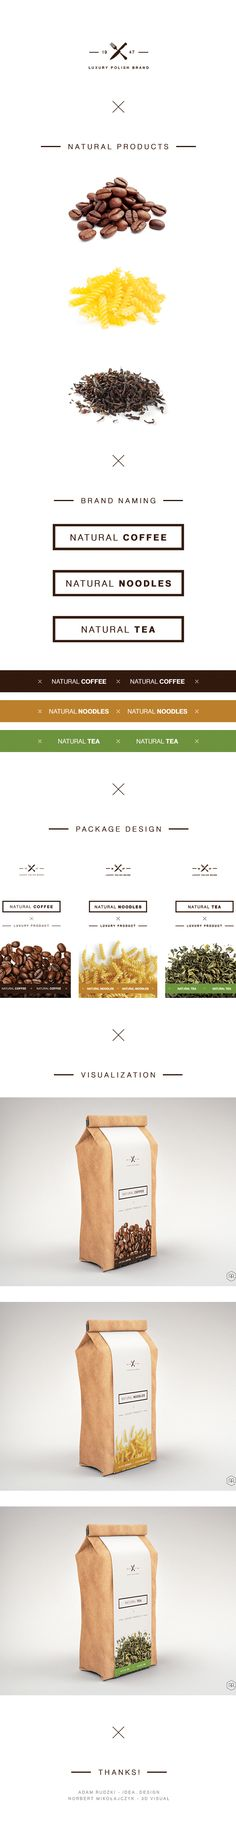 Natural Series Package by Adam Rudzki, via #Behance #Packaging #Branding